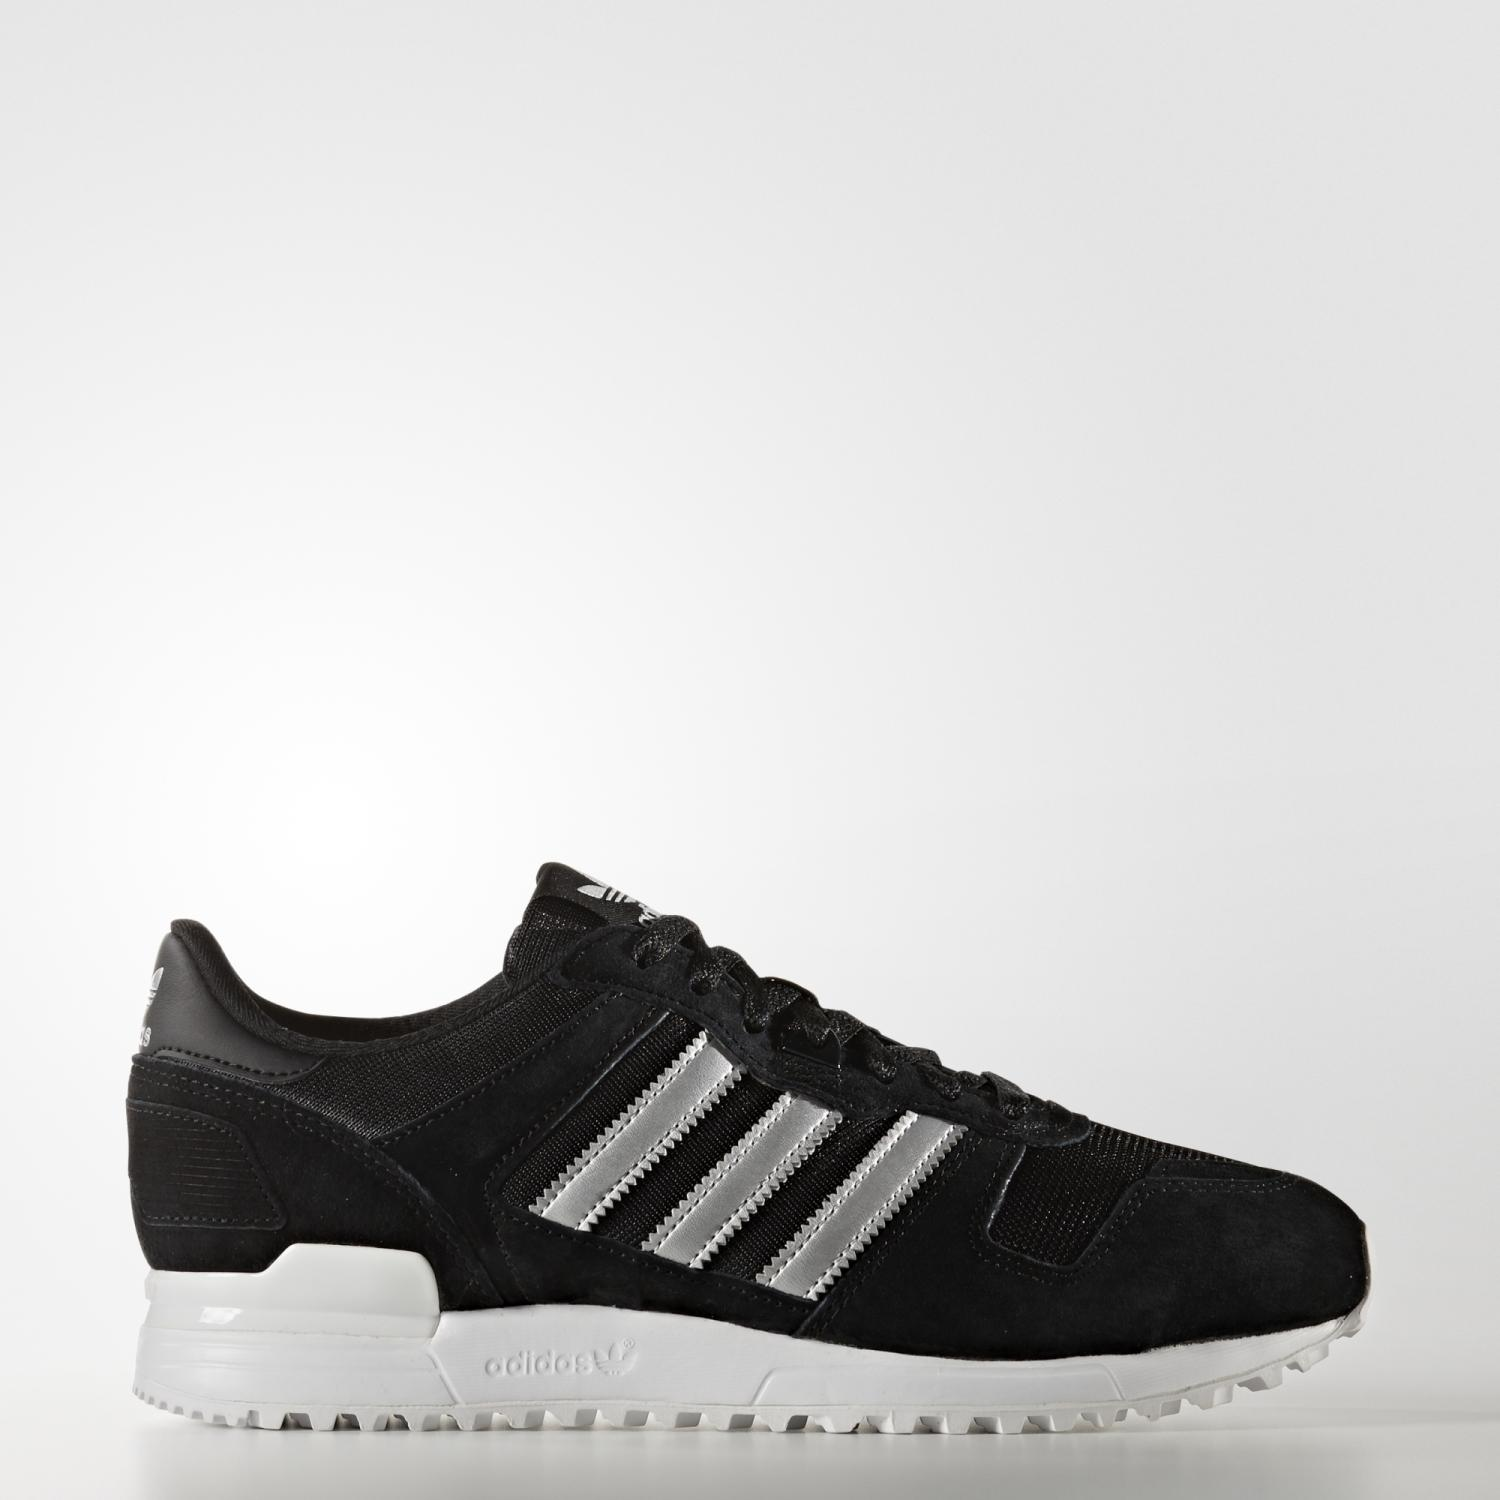 c03999cffe75 Adidas Originals Shoes Zx 700 Core Black matte Silver utility Black -  Tifoshop.com